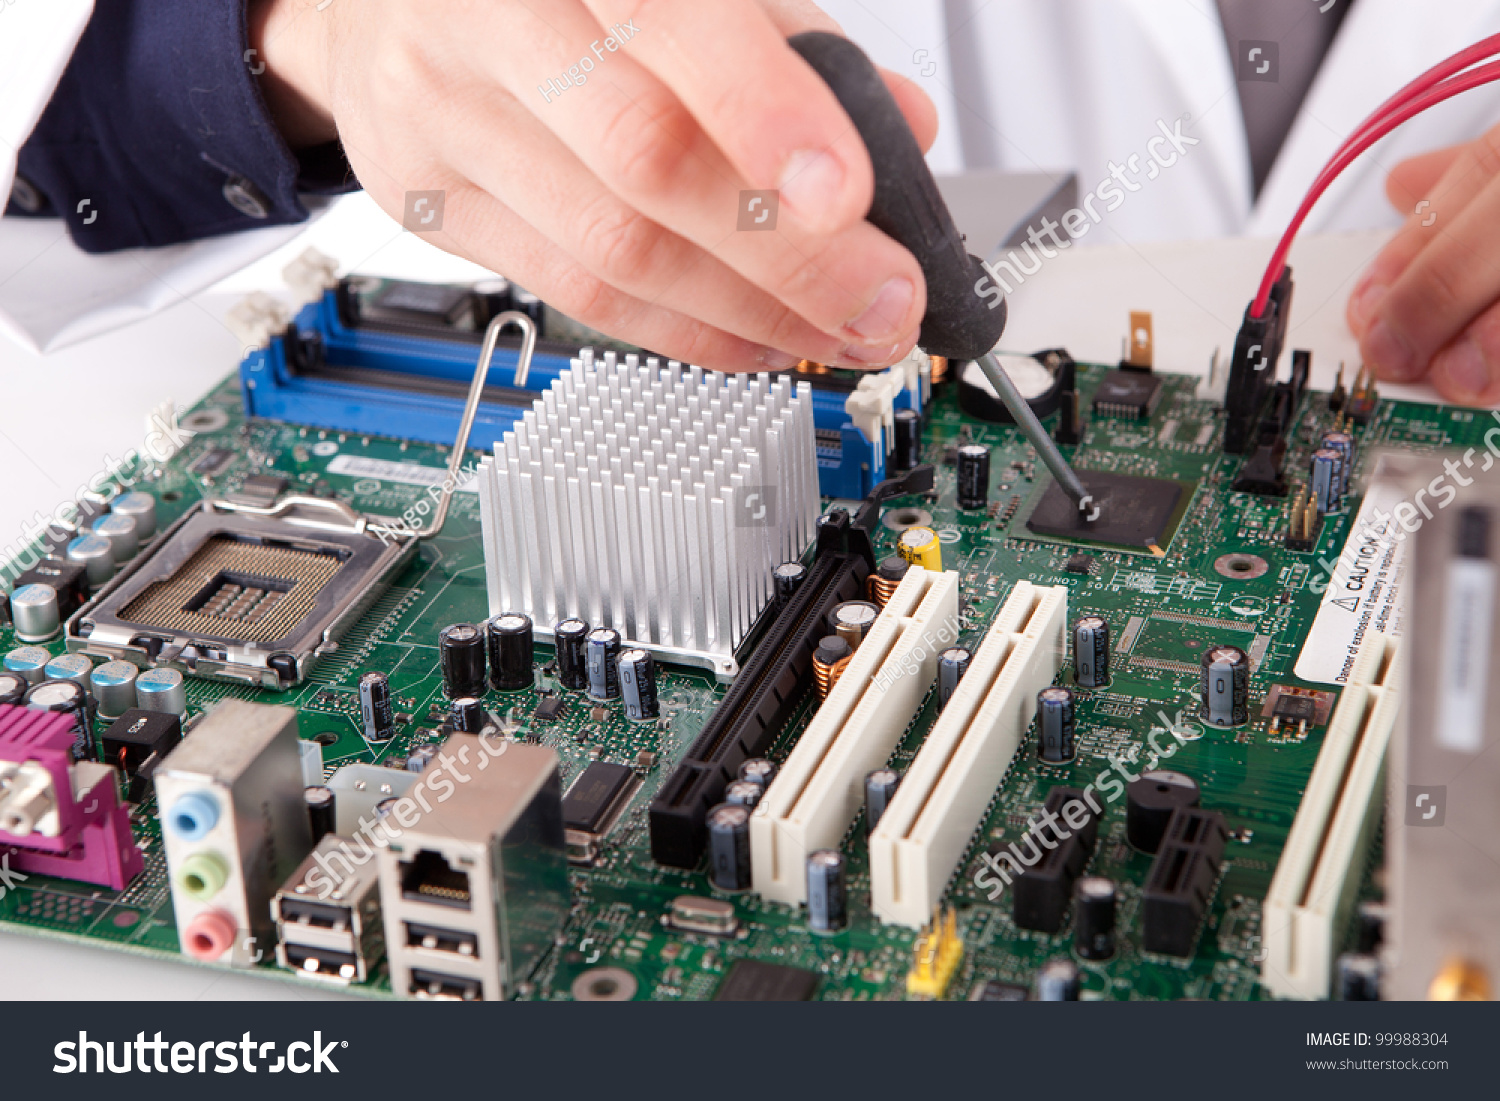 Computer Engineer Working On An Old Motherboard Stock